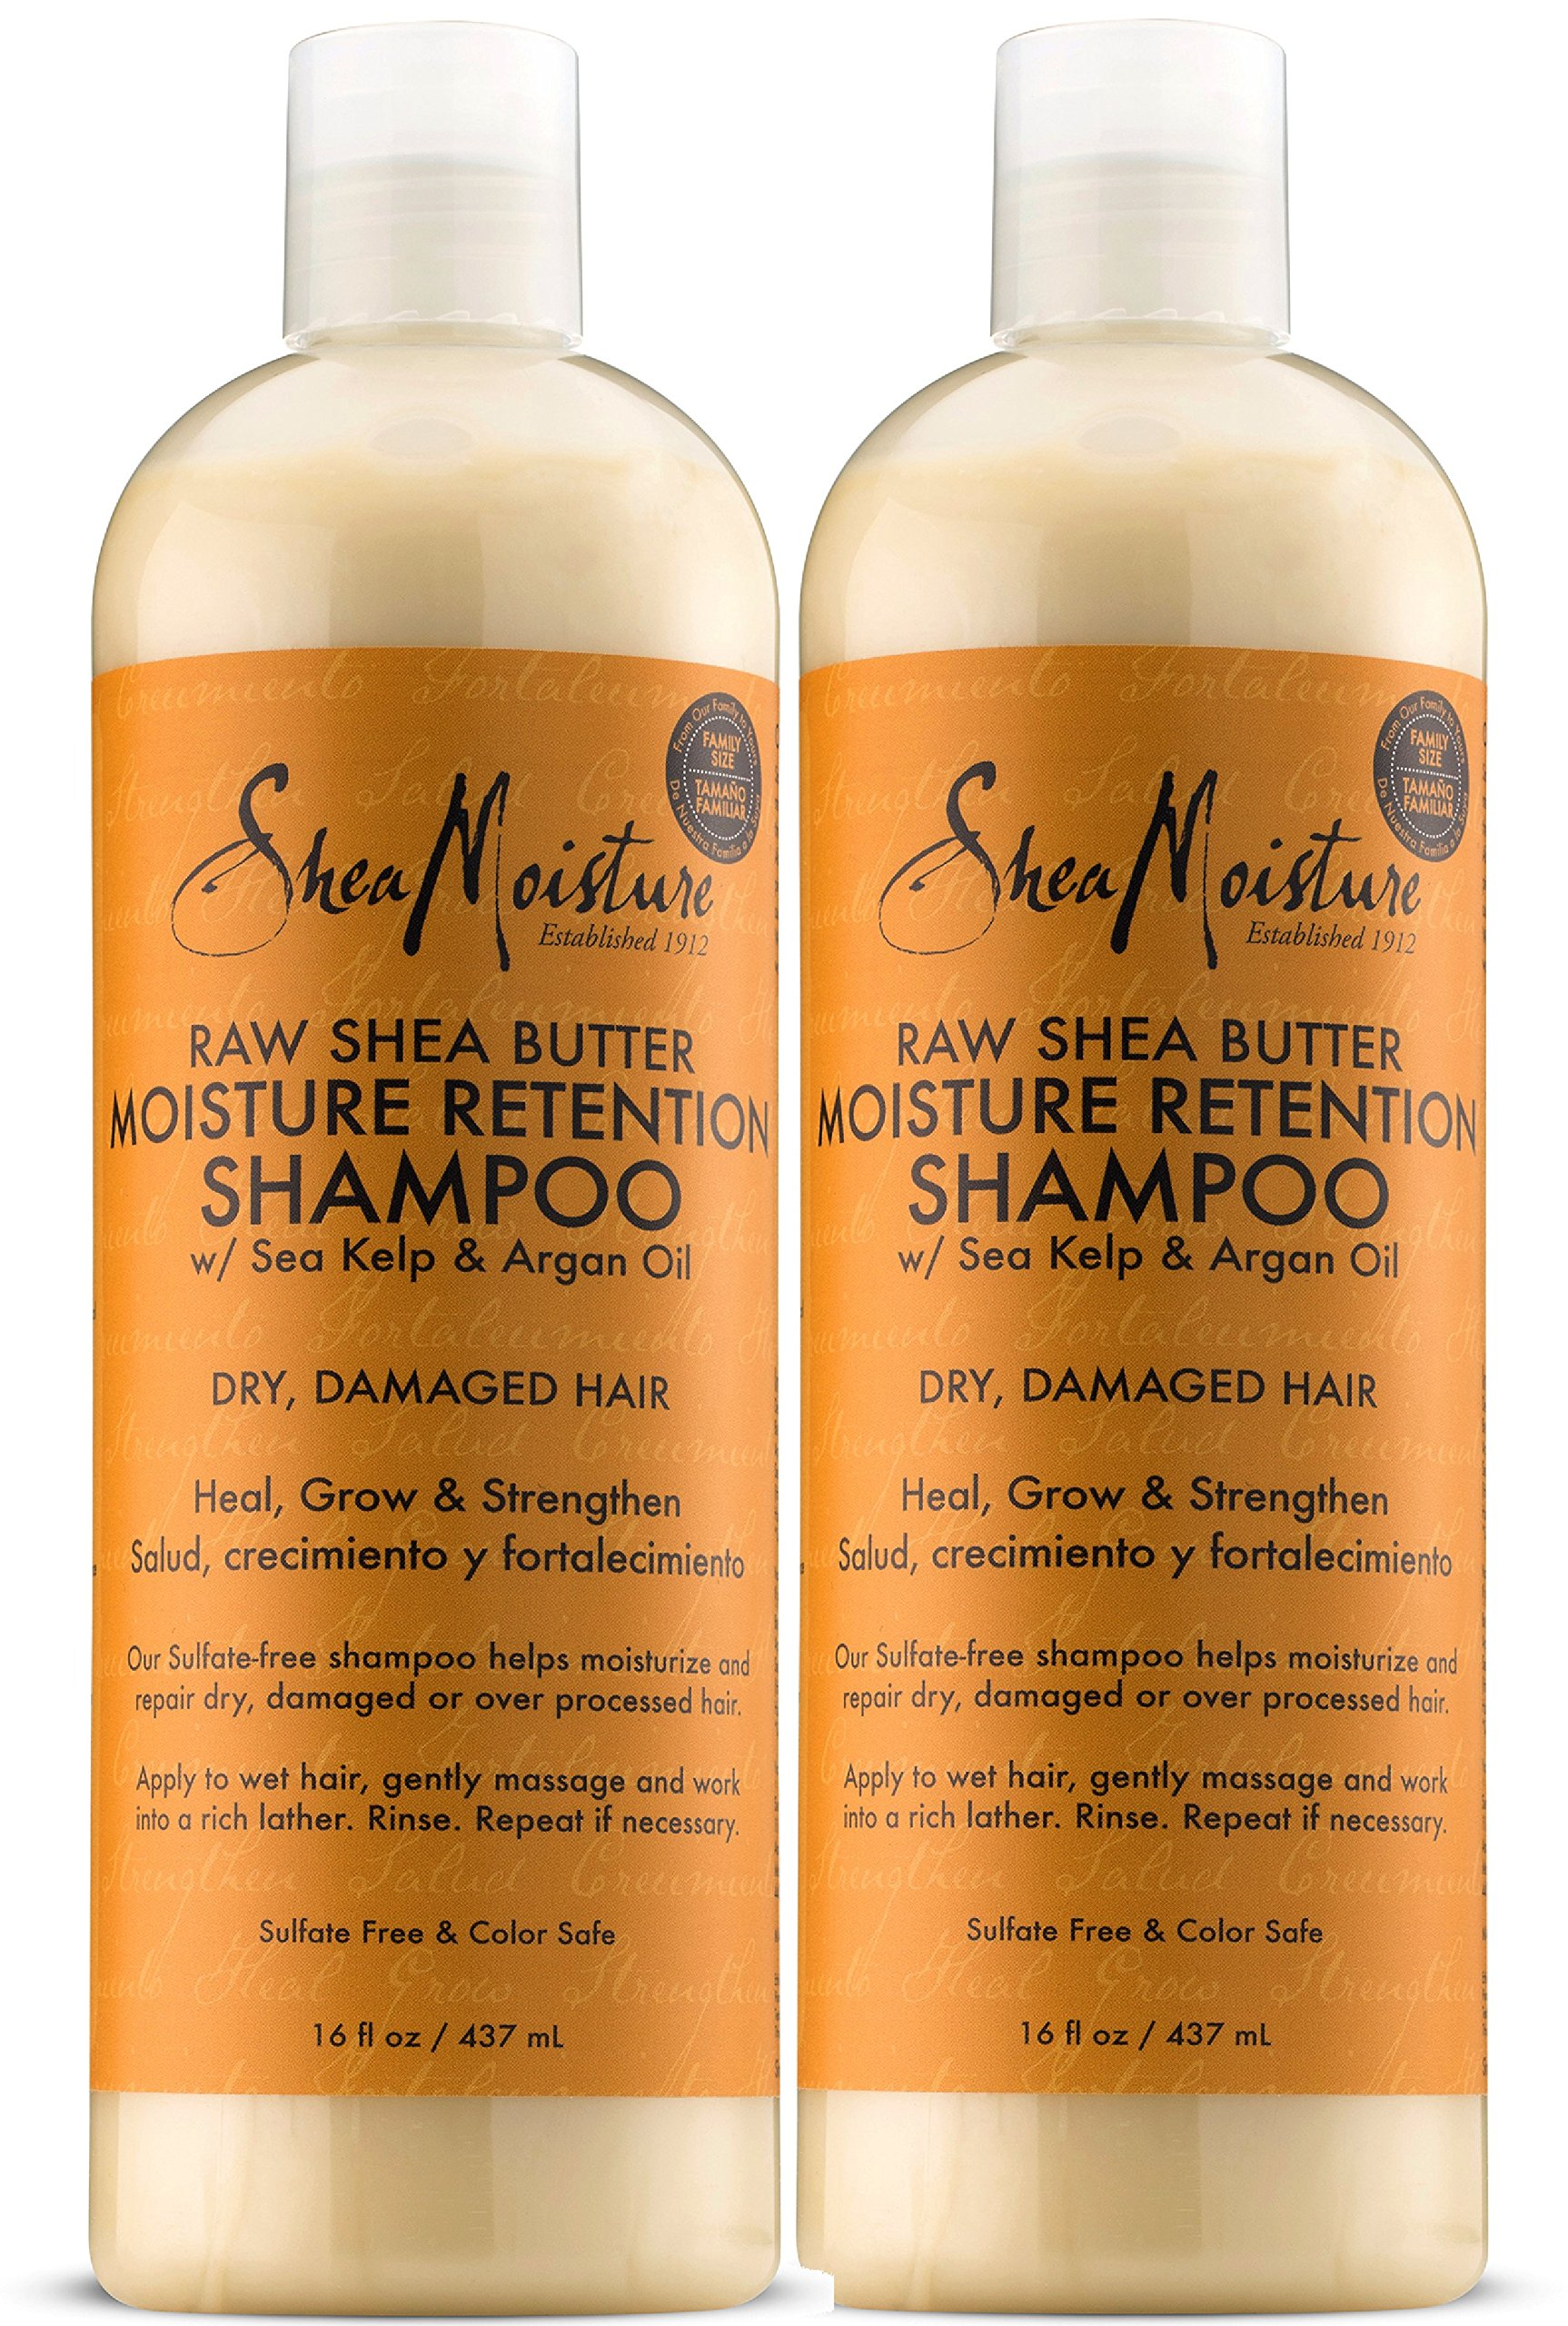 Shea Moisture Raw Shea Butter Moisture Retention Shampoo, 16 Ounce, Pack of 2 by Shea Moisture